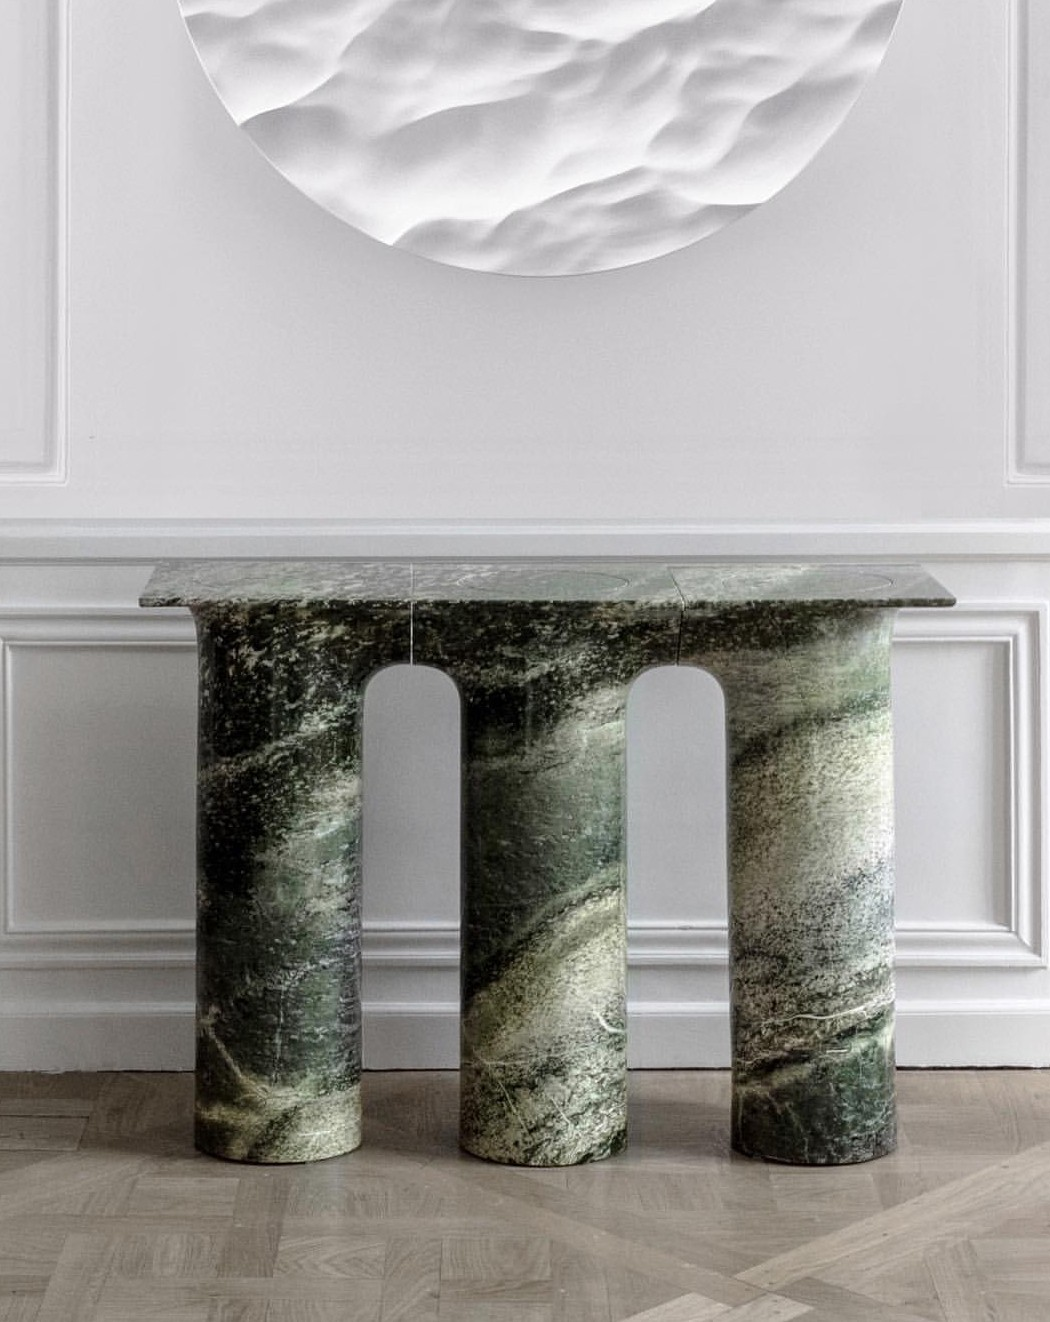 marble console table marble console table 10 Unparalleled Marble Console Tables 10 10 Unparalleled Marble Console Tables